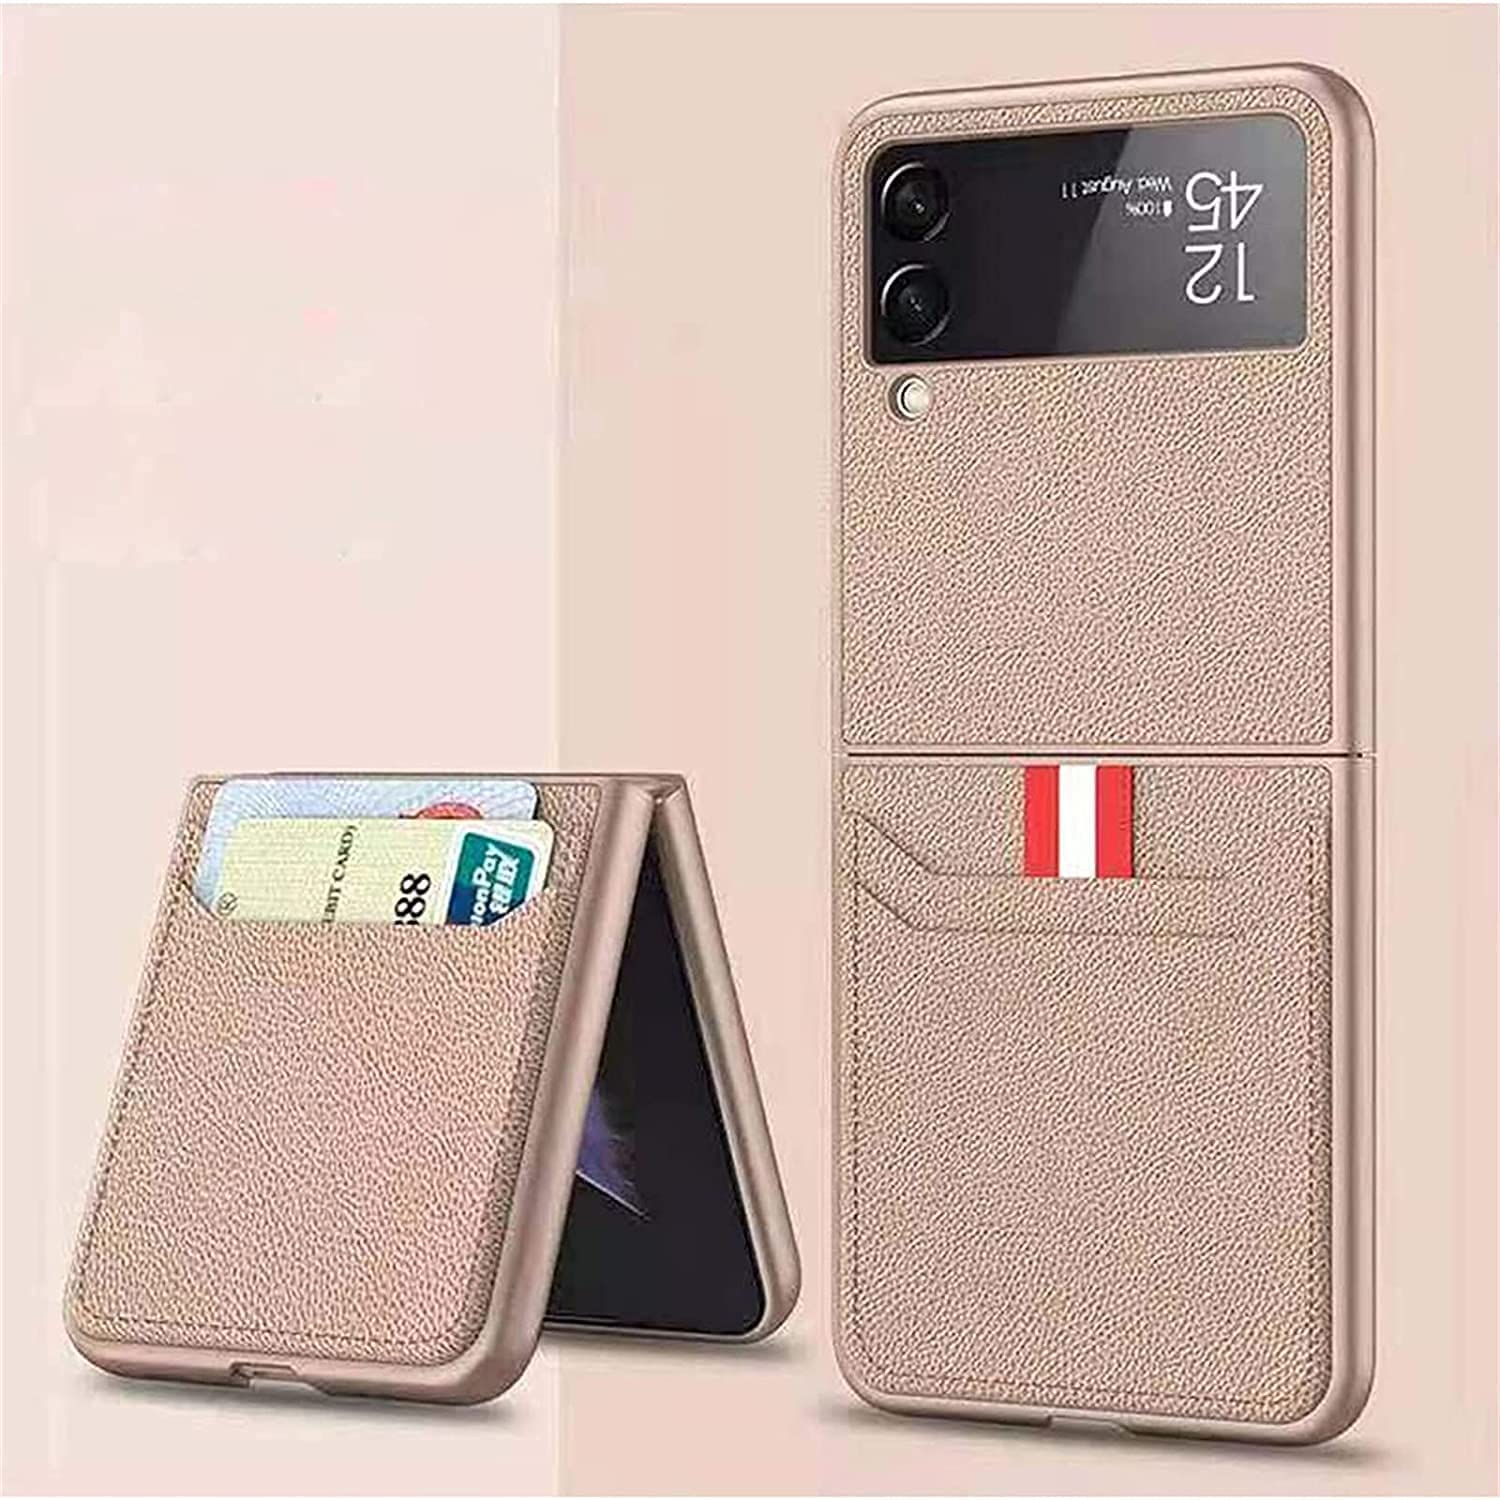 for Samsung Galaxy Z Flip 3 5G Case, Shockproof Leather Lightweight Cover Full Protective Cases with Wallet Card Suitable for Samsung Galaxy Z Flip 3 5G (Gold)